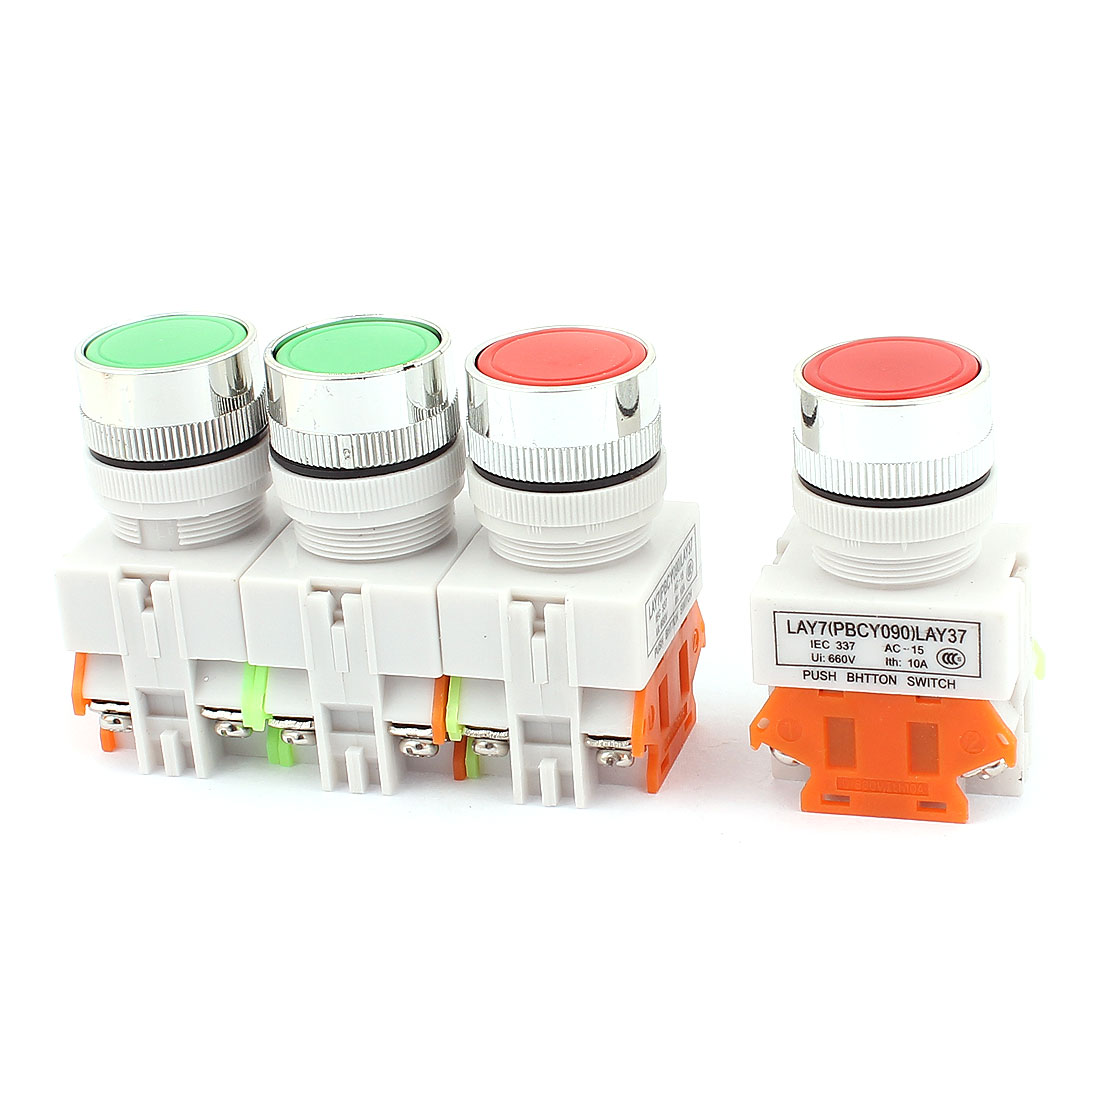 4PCS AC 660V 10A 1NO 1NC DPST 4 Terminals Lacthing Push Button Switch